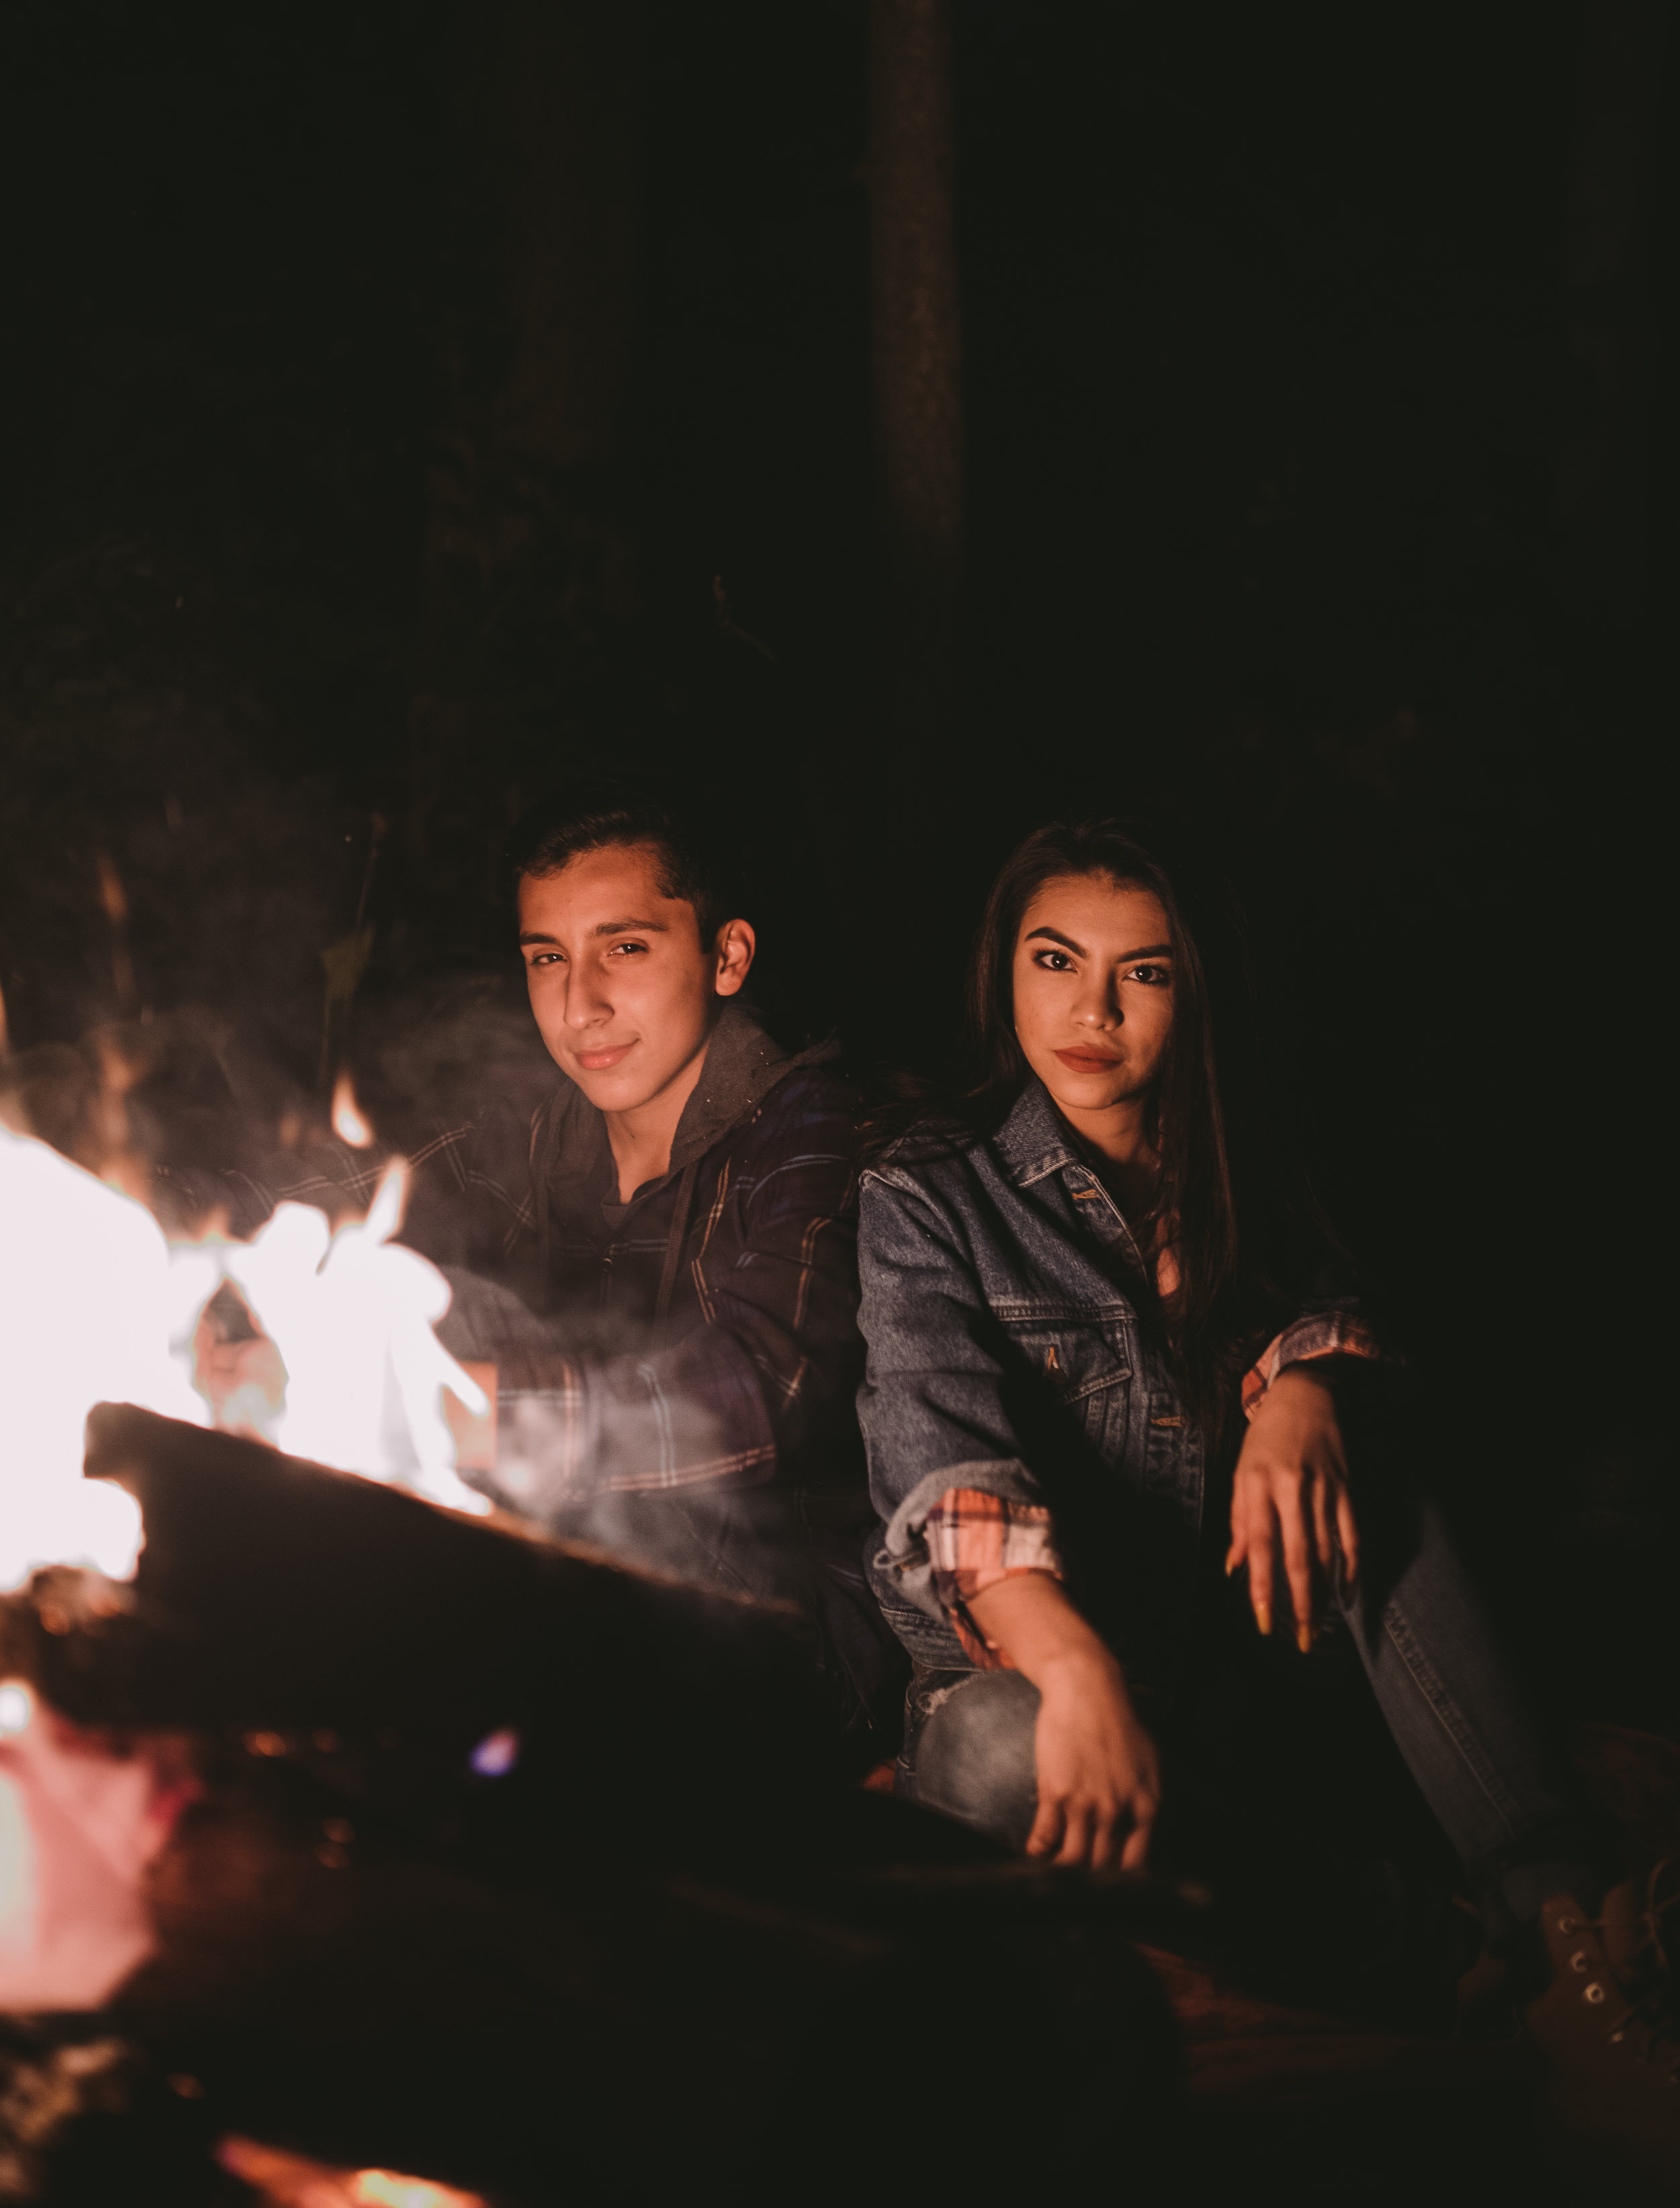 CristianChavez_SeniorRep2_CampfireSession_November2017_Senior Photography In Tempe_ArizonaPortraitPhotographer_SamanthaRosePhotography_-8.jpg